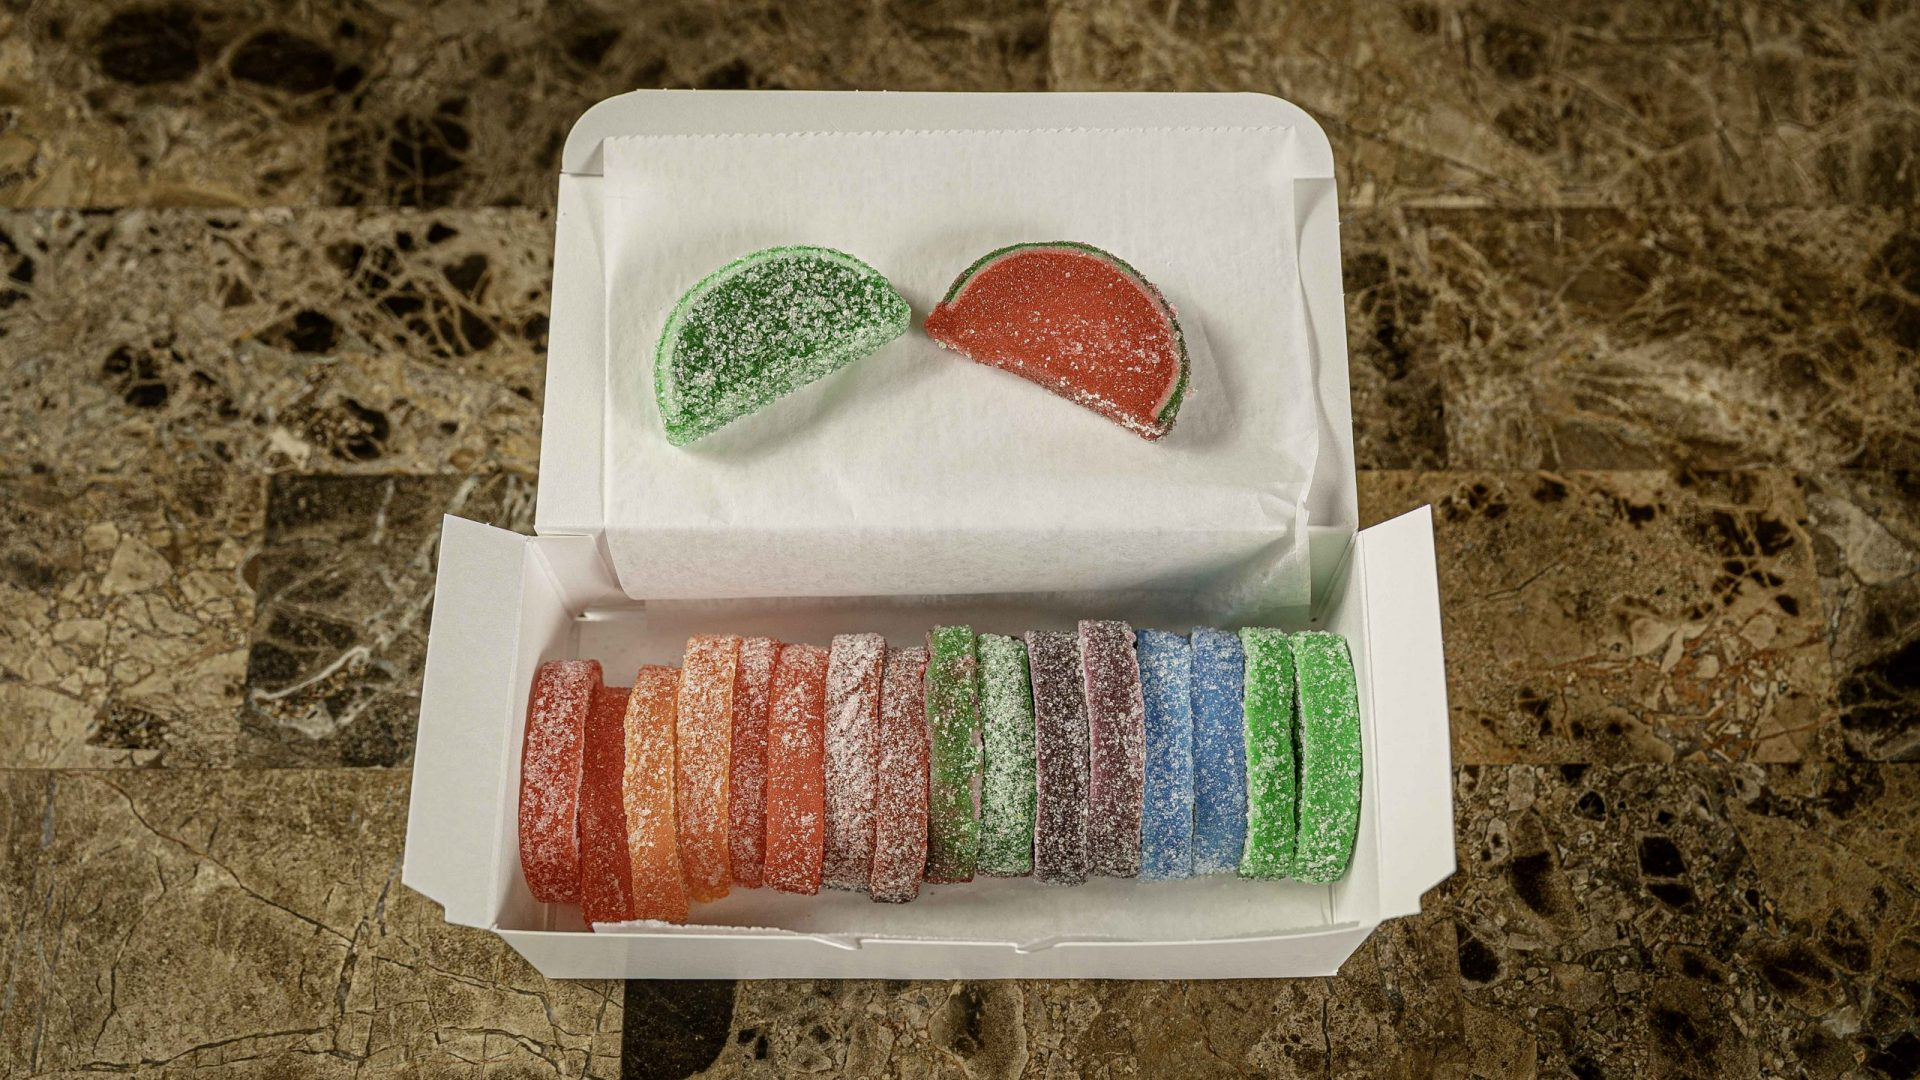 assorted fruit jelly slices.